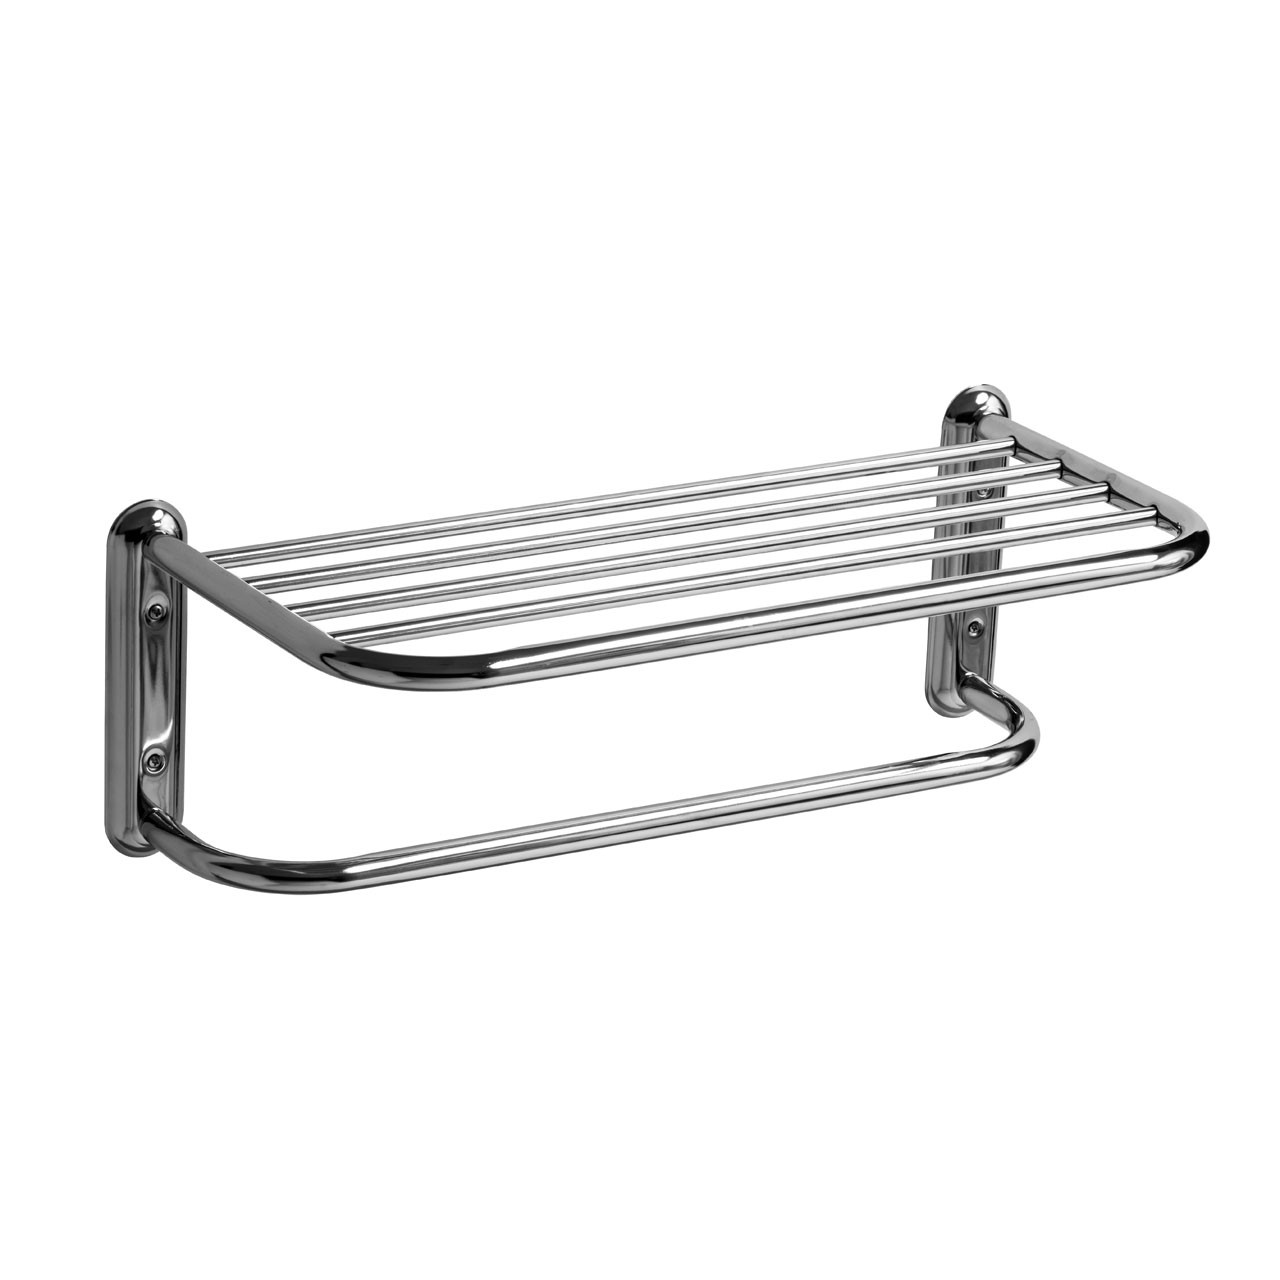 Prime Furnishing Wall Mountable Towel Shelf, Chrome